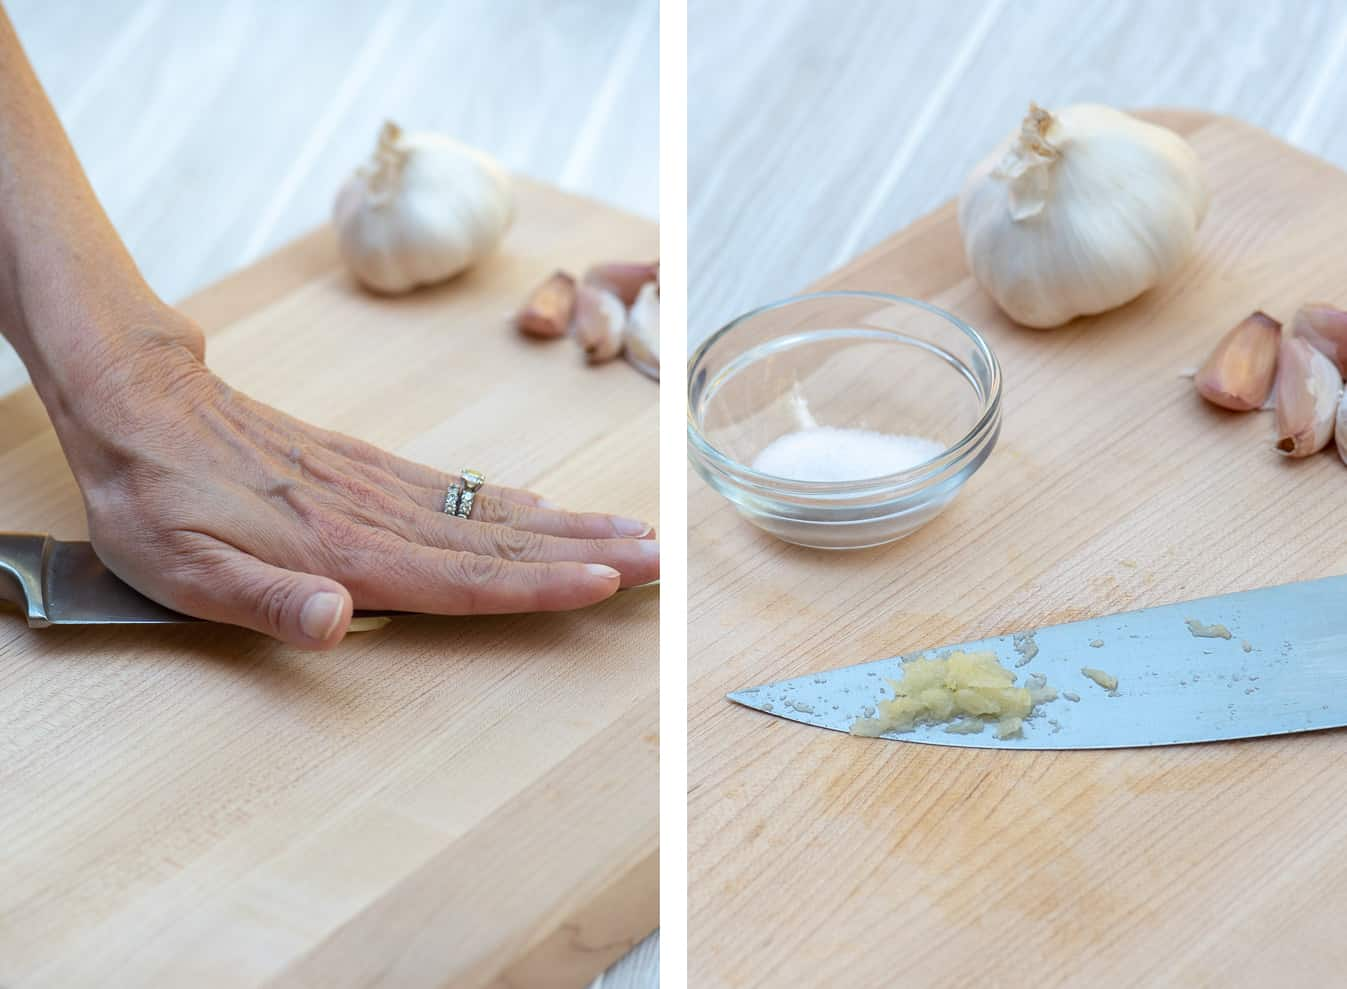 Two images side by side demonstrating how to crush garlic.